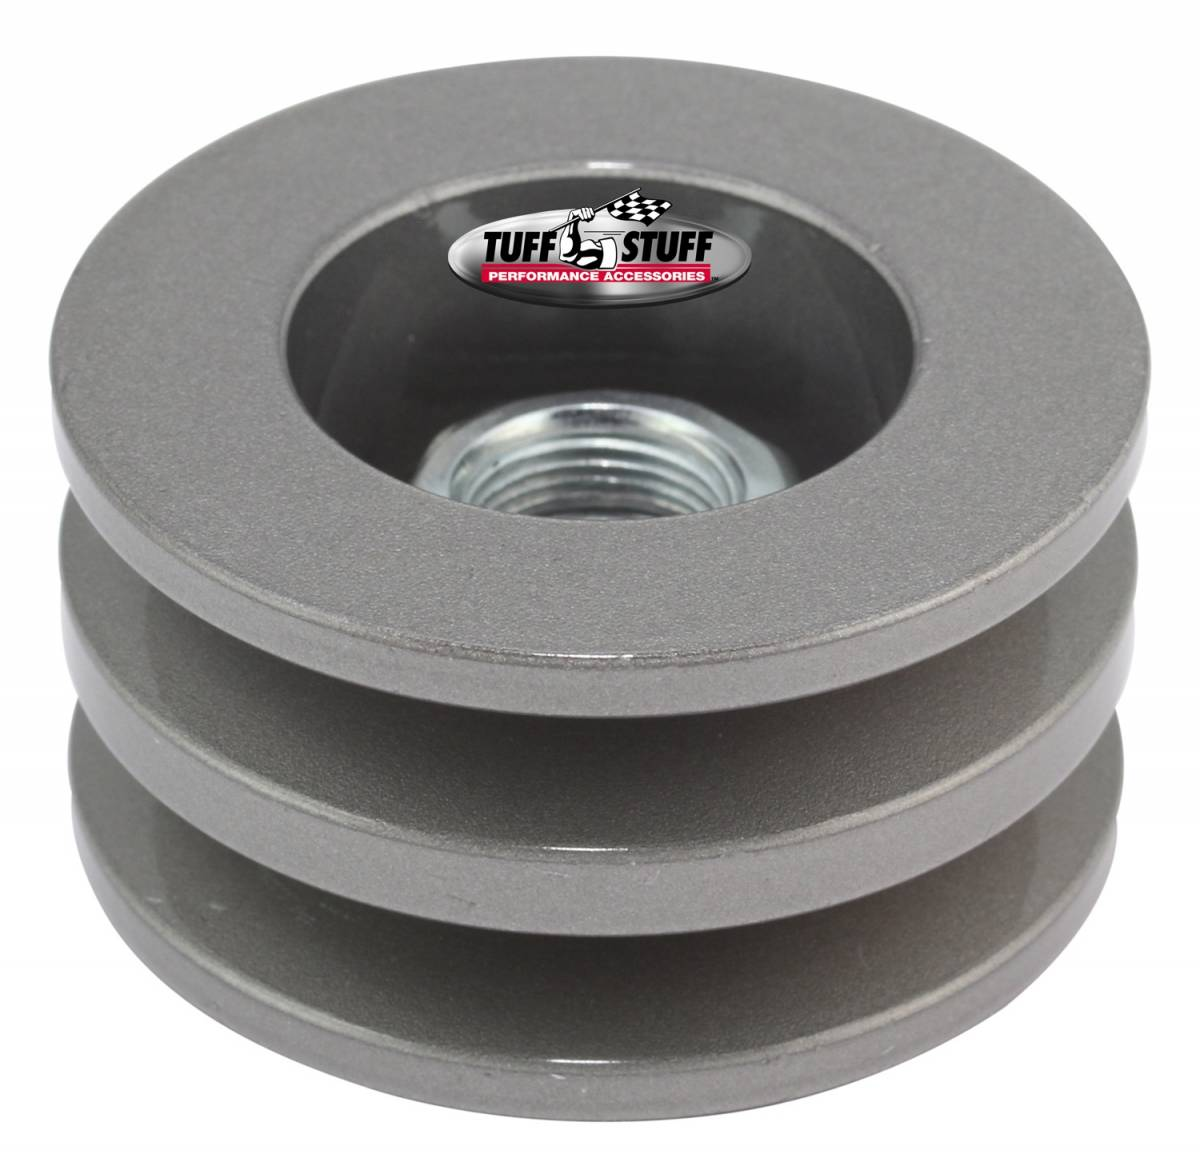 Tuff Stuff Performance - Alternator Pulley 2.628 in. Double V Groove Incl. Lock Washer/Nut As Cast 7610FC